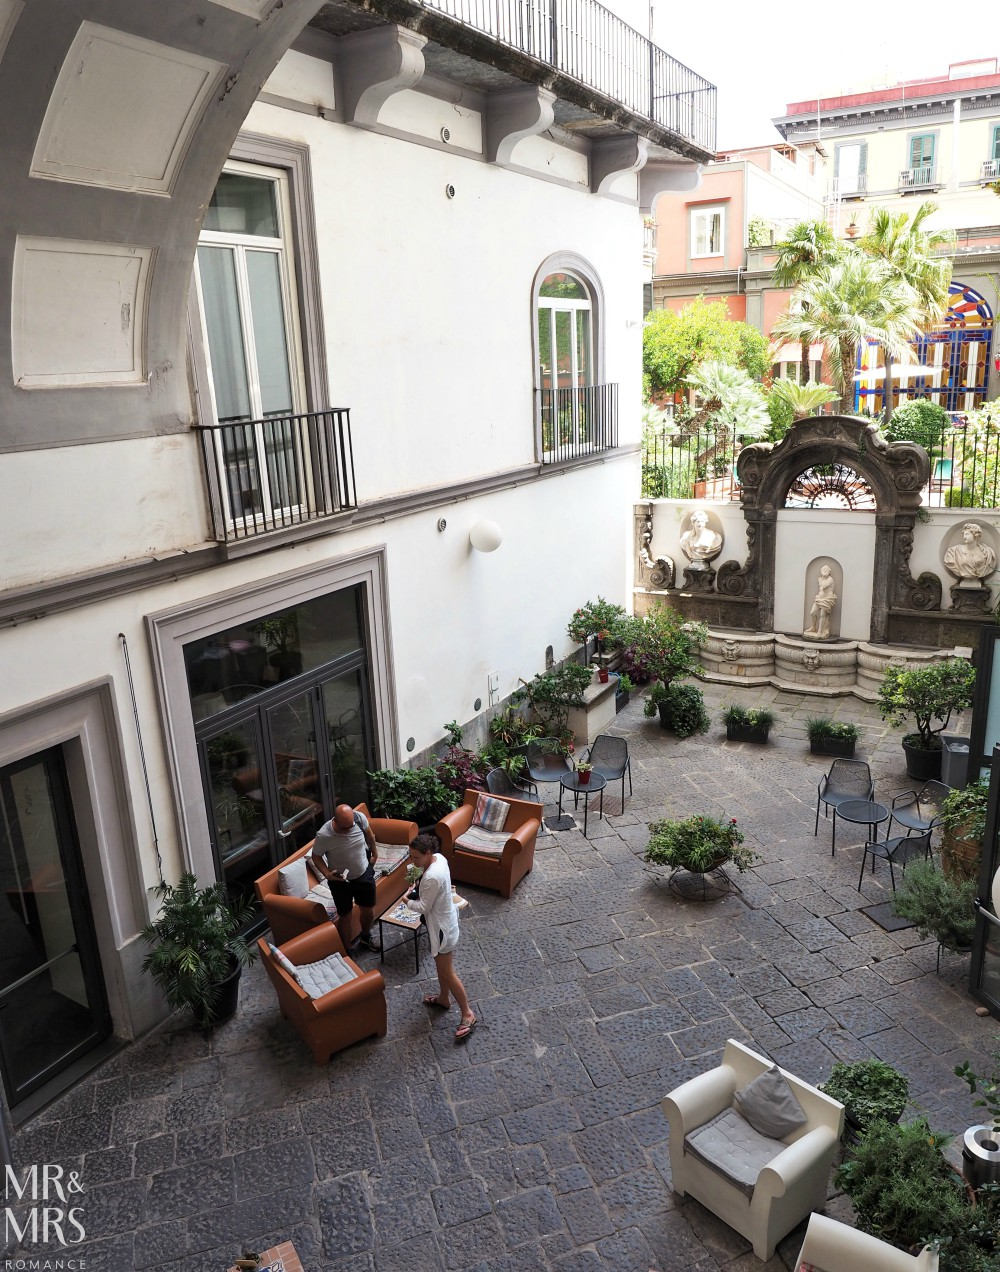 Hotel Piazza Bellini courtyard